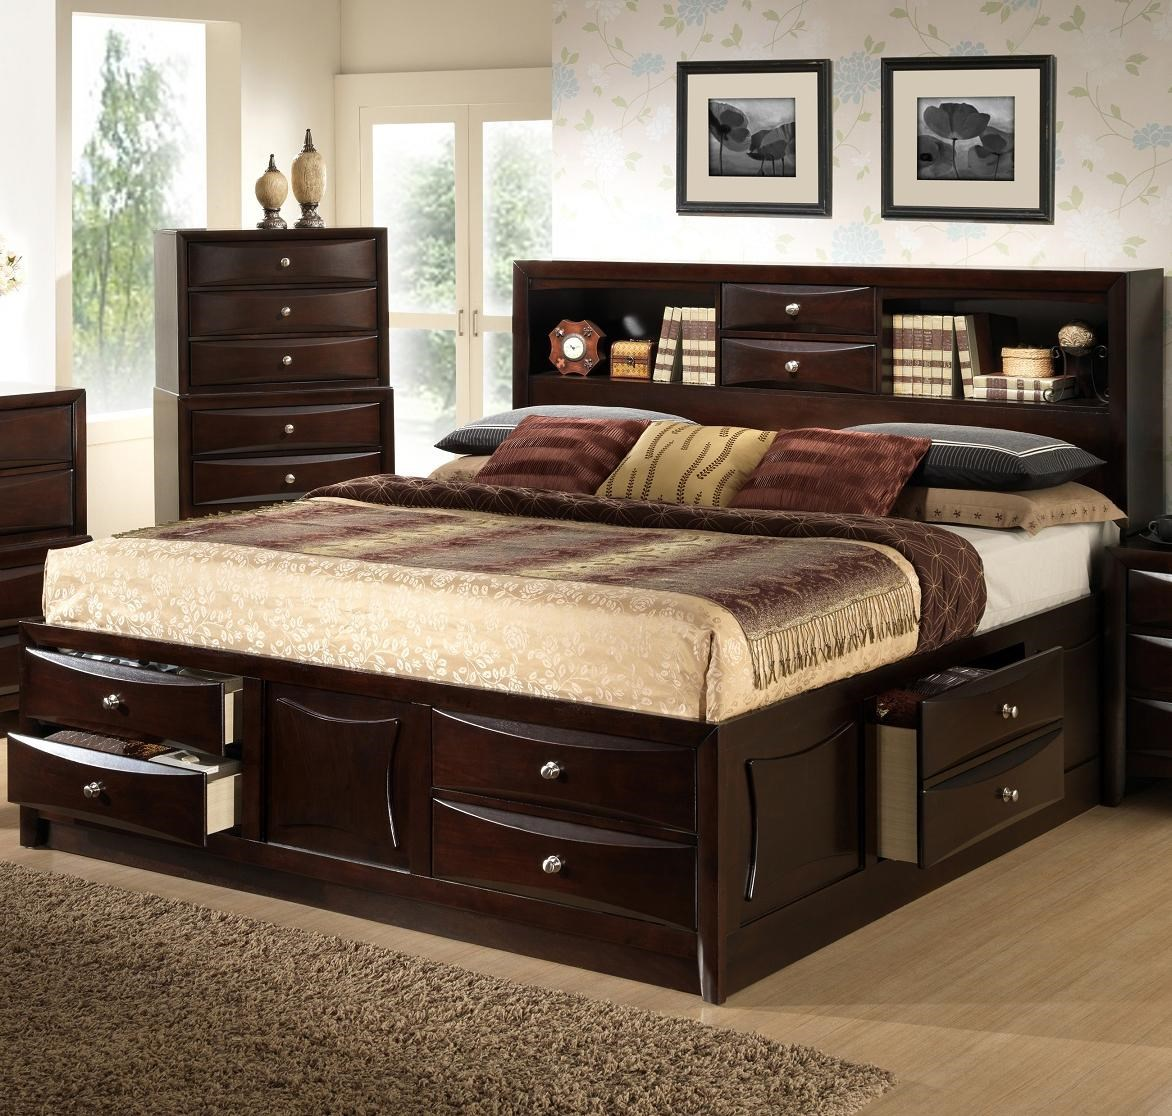 Todd King Storage Bed